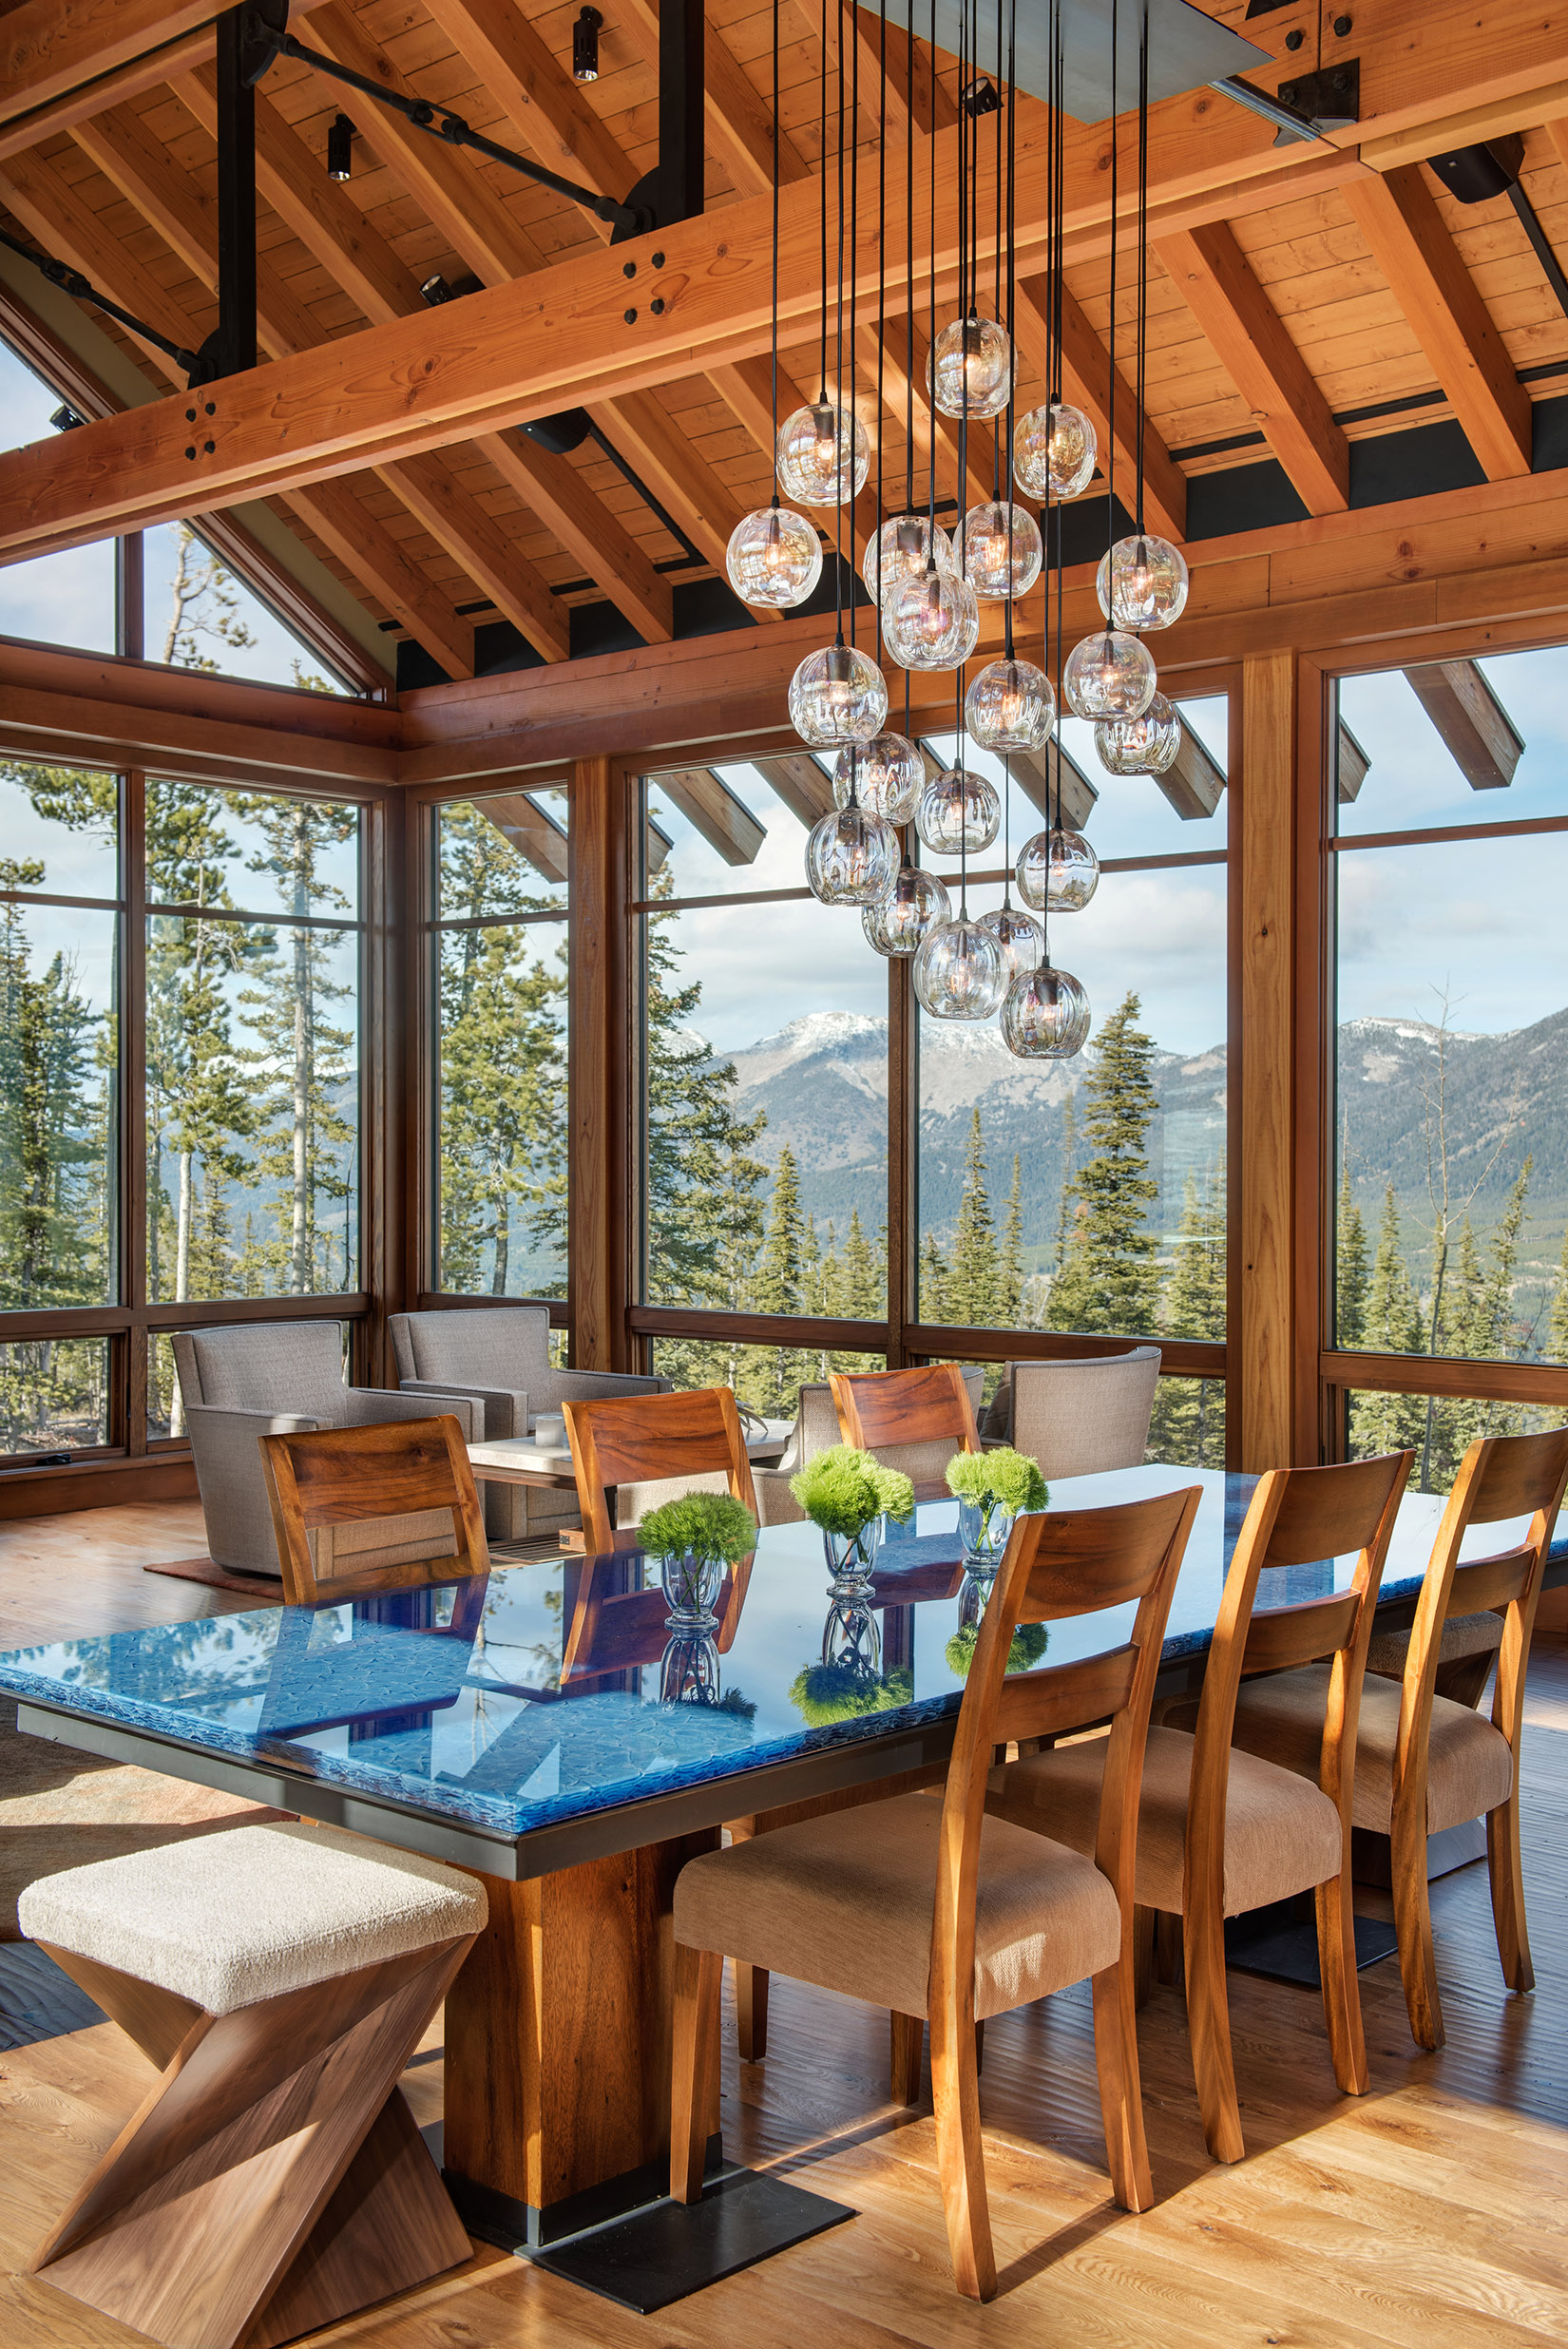 This room is AMAZING!!  The walls of glass over looking the Spanish Peaks is incredible!  What really draws my eye is the gorgeous light fixture over the dining table.  Interior Design -  Varda Interiors  Architect -  Krannitz Gehl Architects